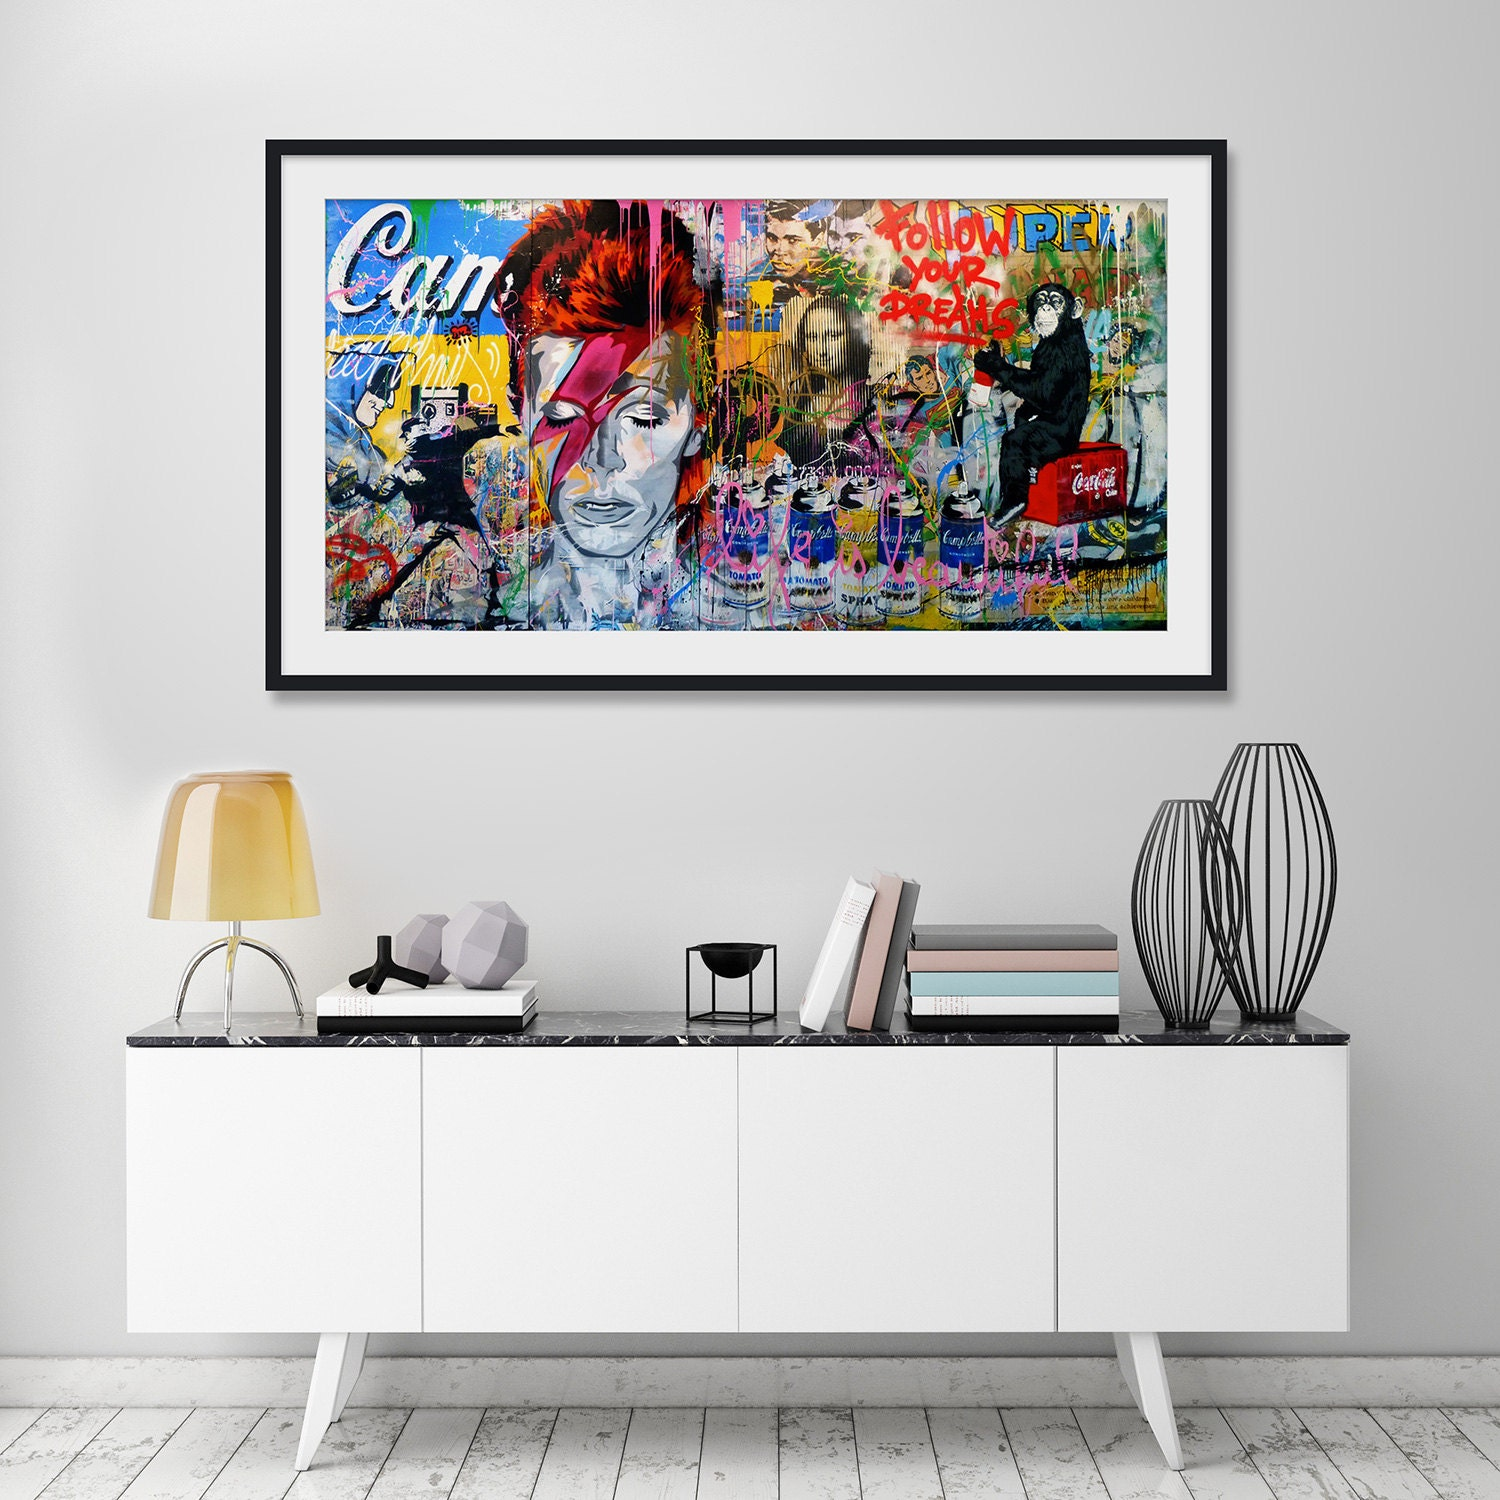 Ziggy stardust mural by mr brainwash art print for Mural mr brainwash